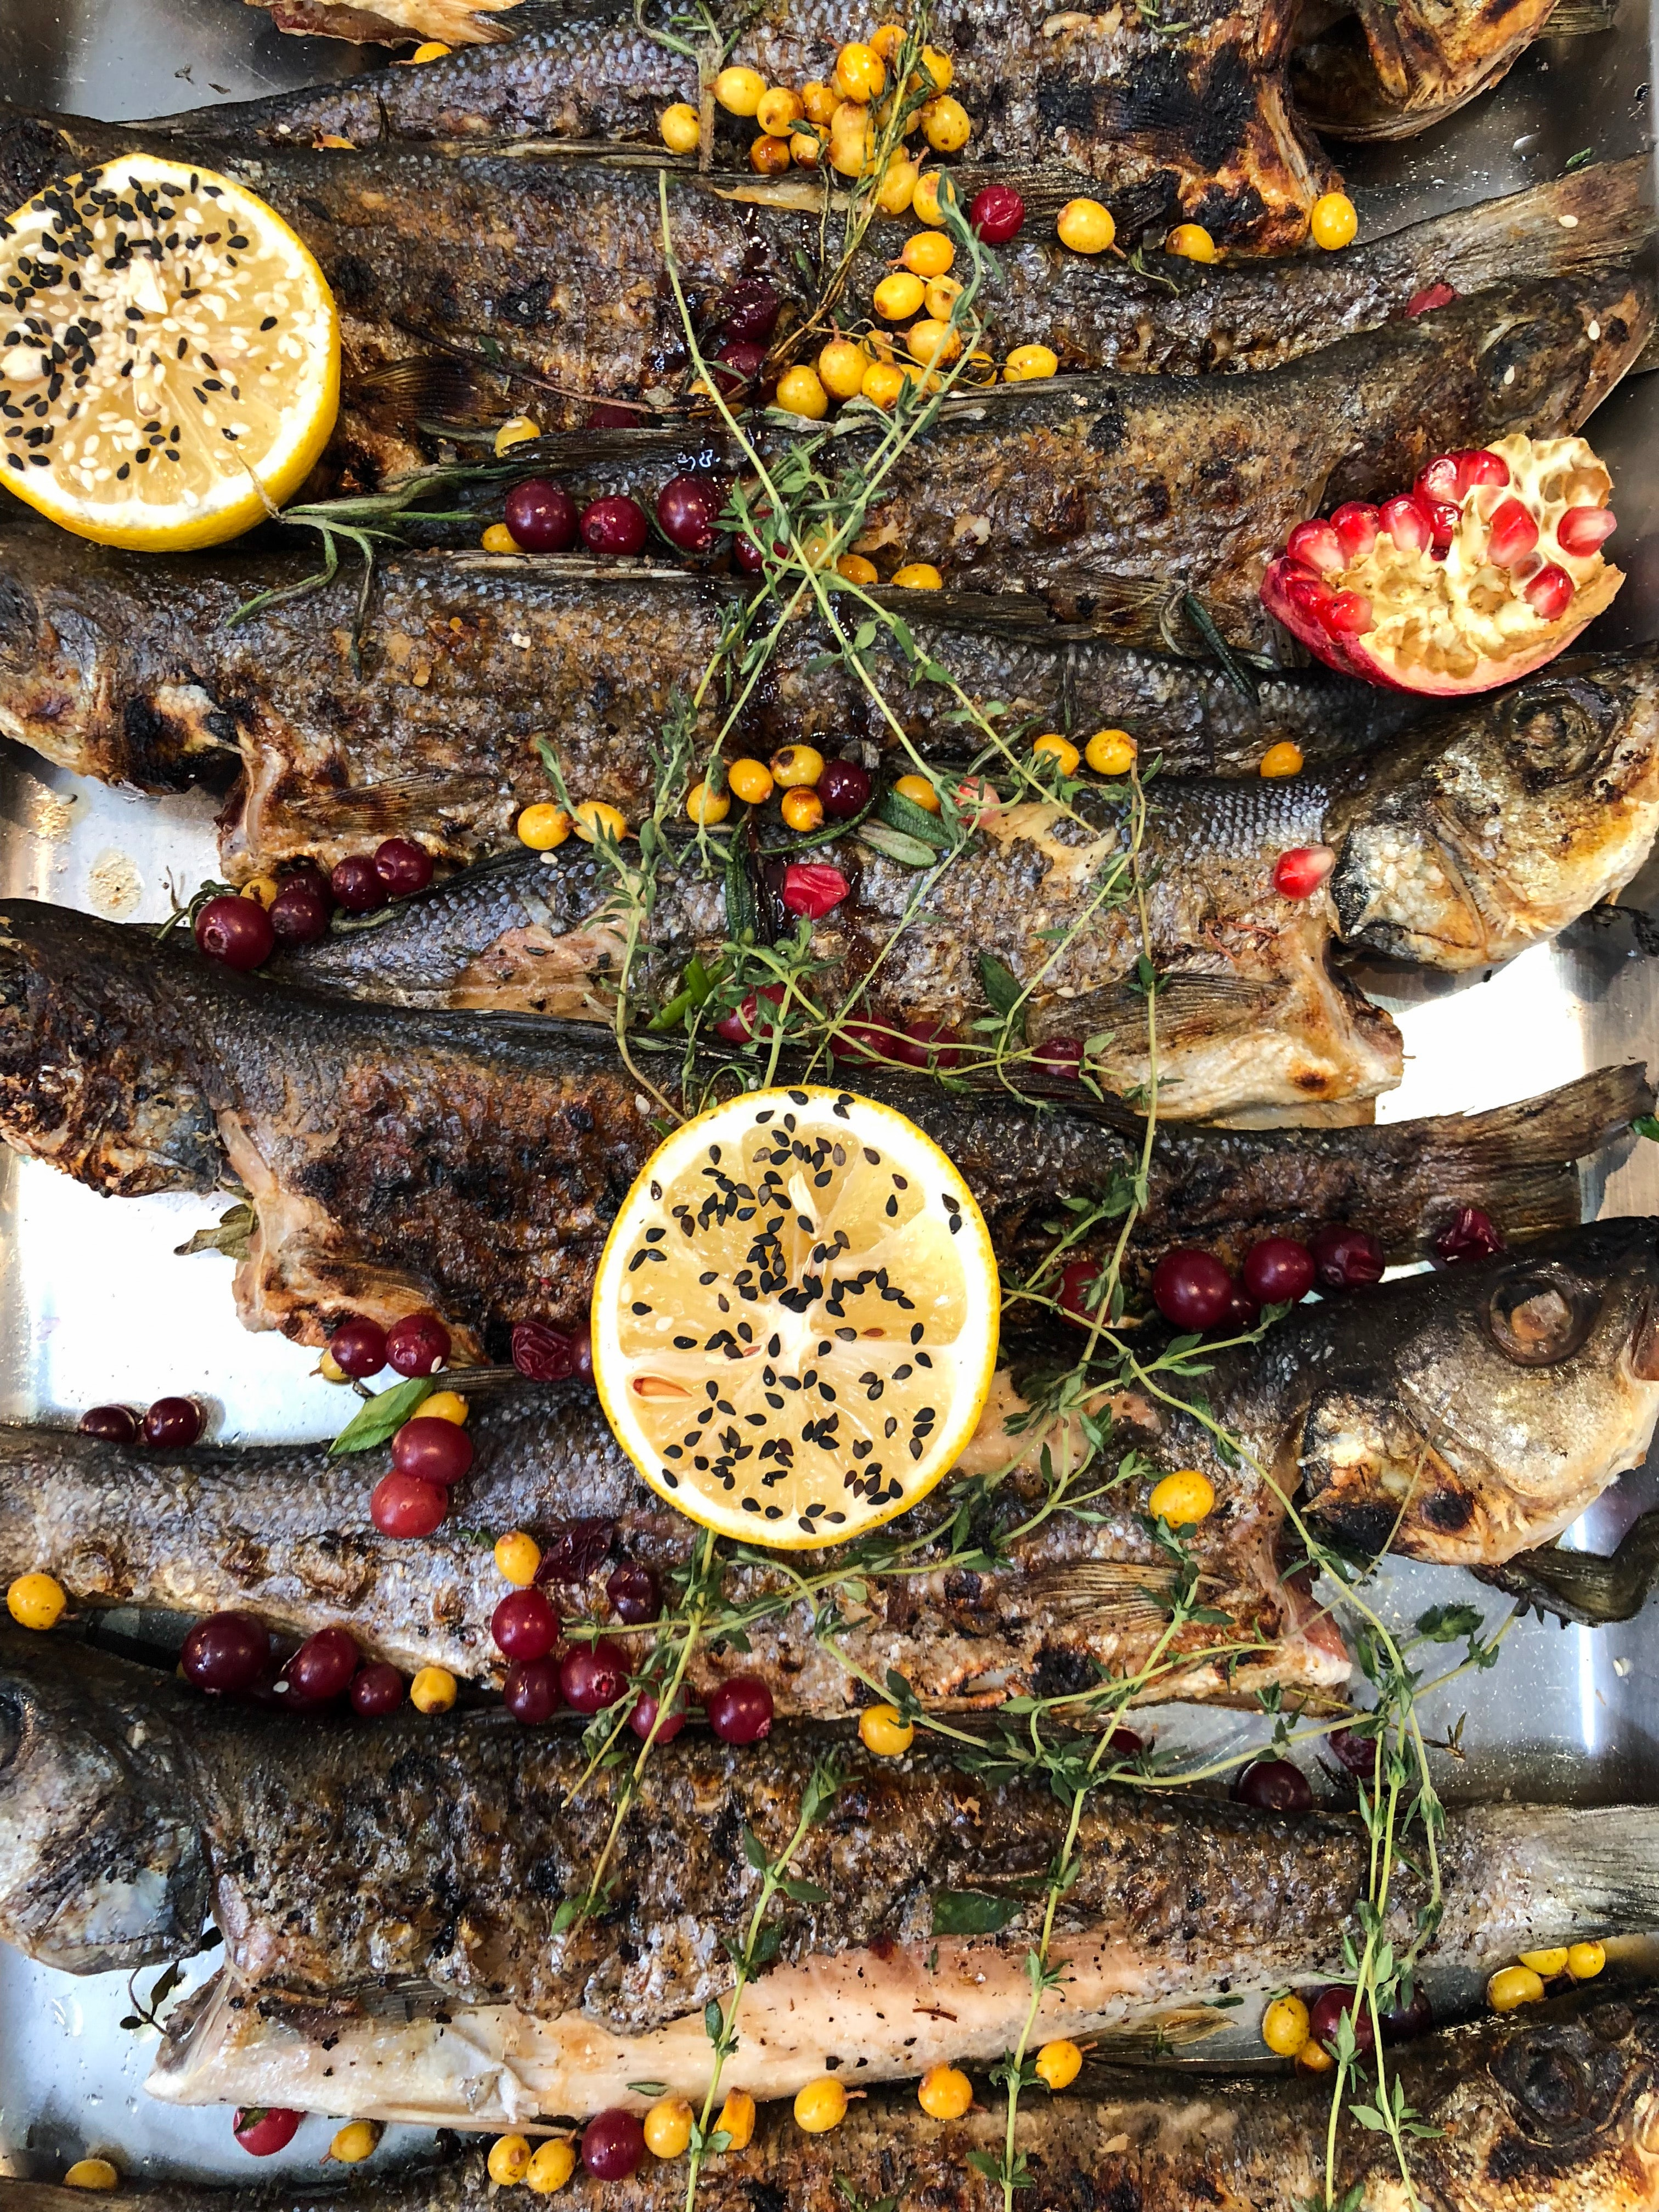 marinated fish feast of fish at Christmas Eve dinner Italy Italian tradition herbs lemon tray seasoning